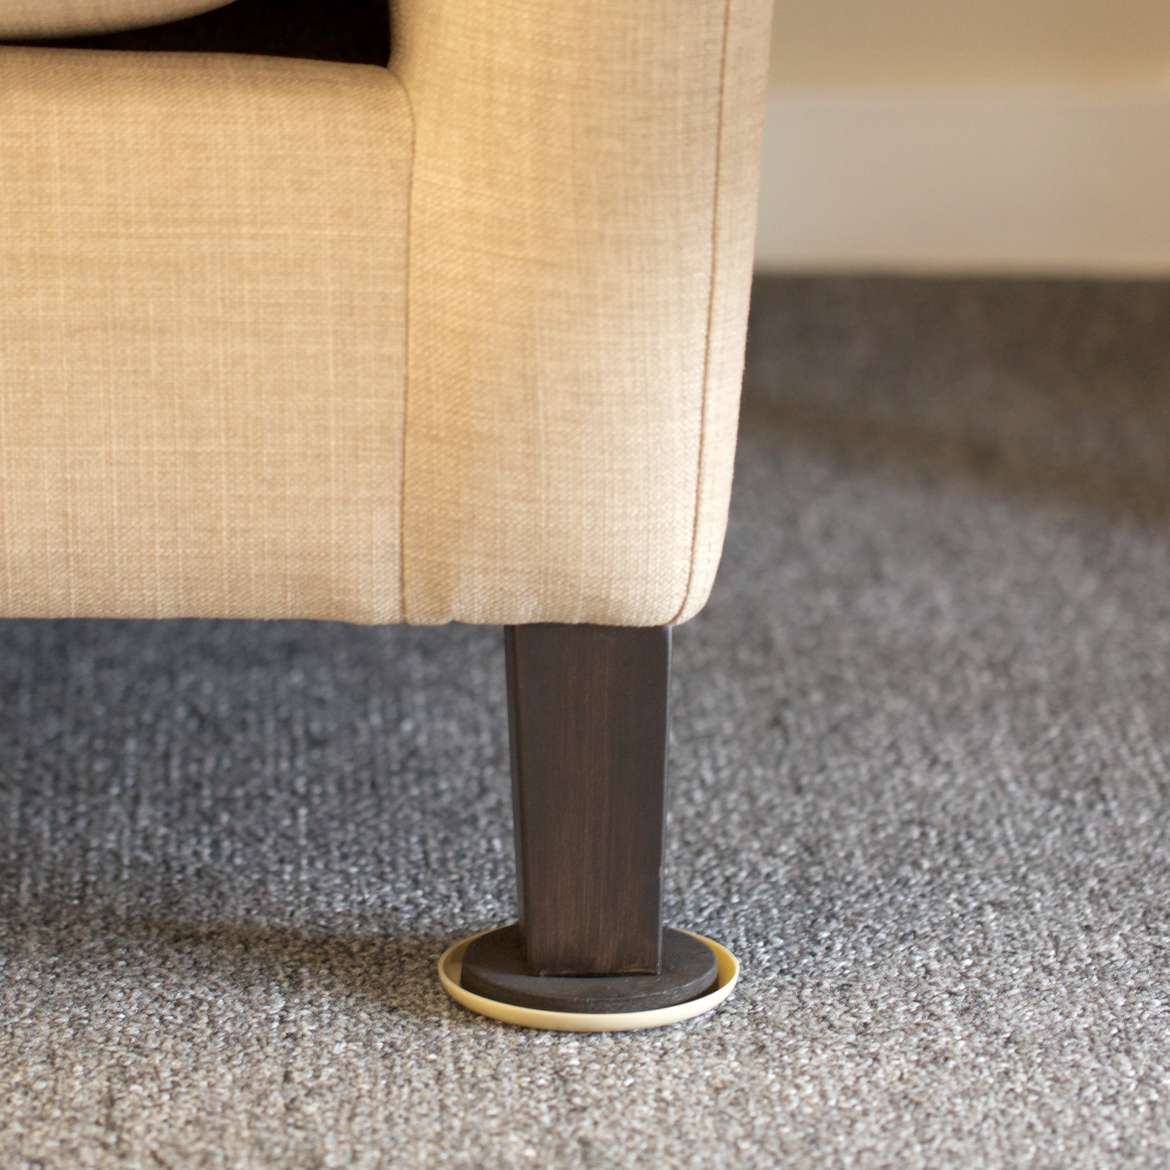 Plastic Carpet Furniture Sliders